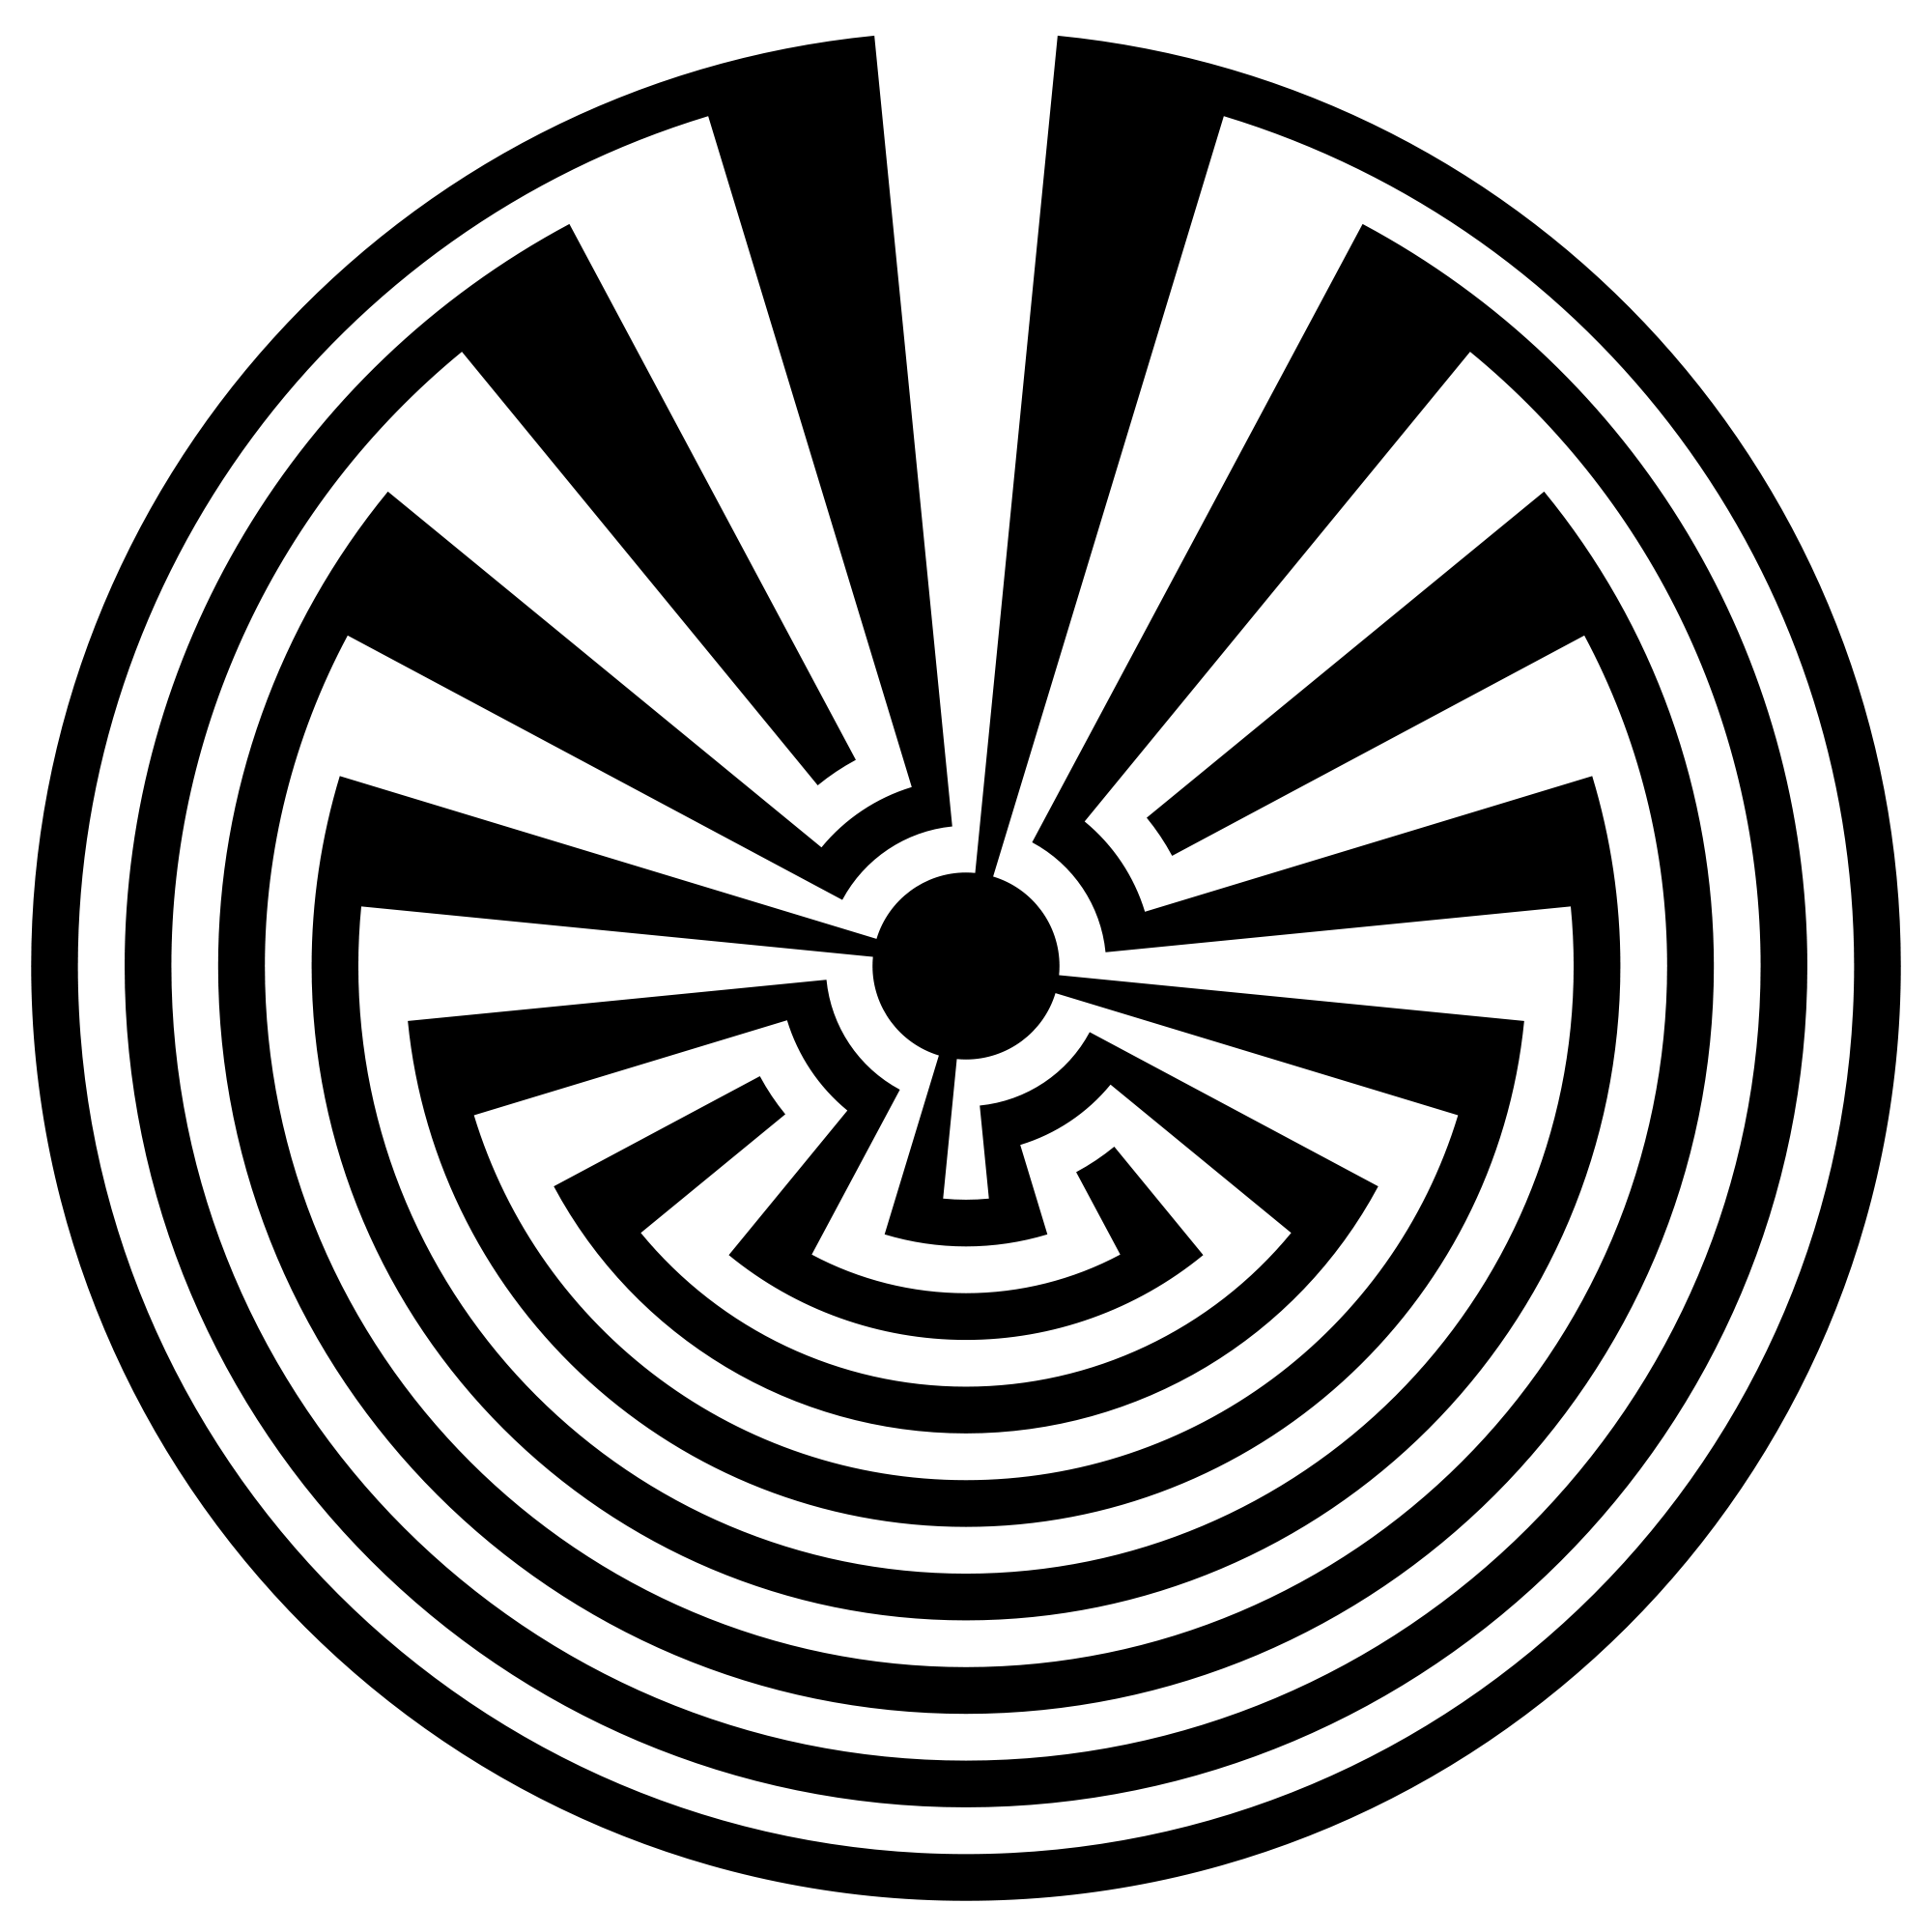 Radial drawing man made. File labyrinth svg wikimedia